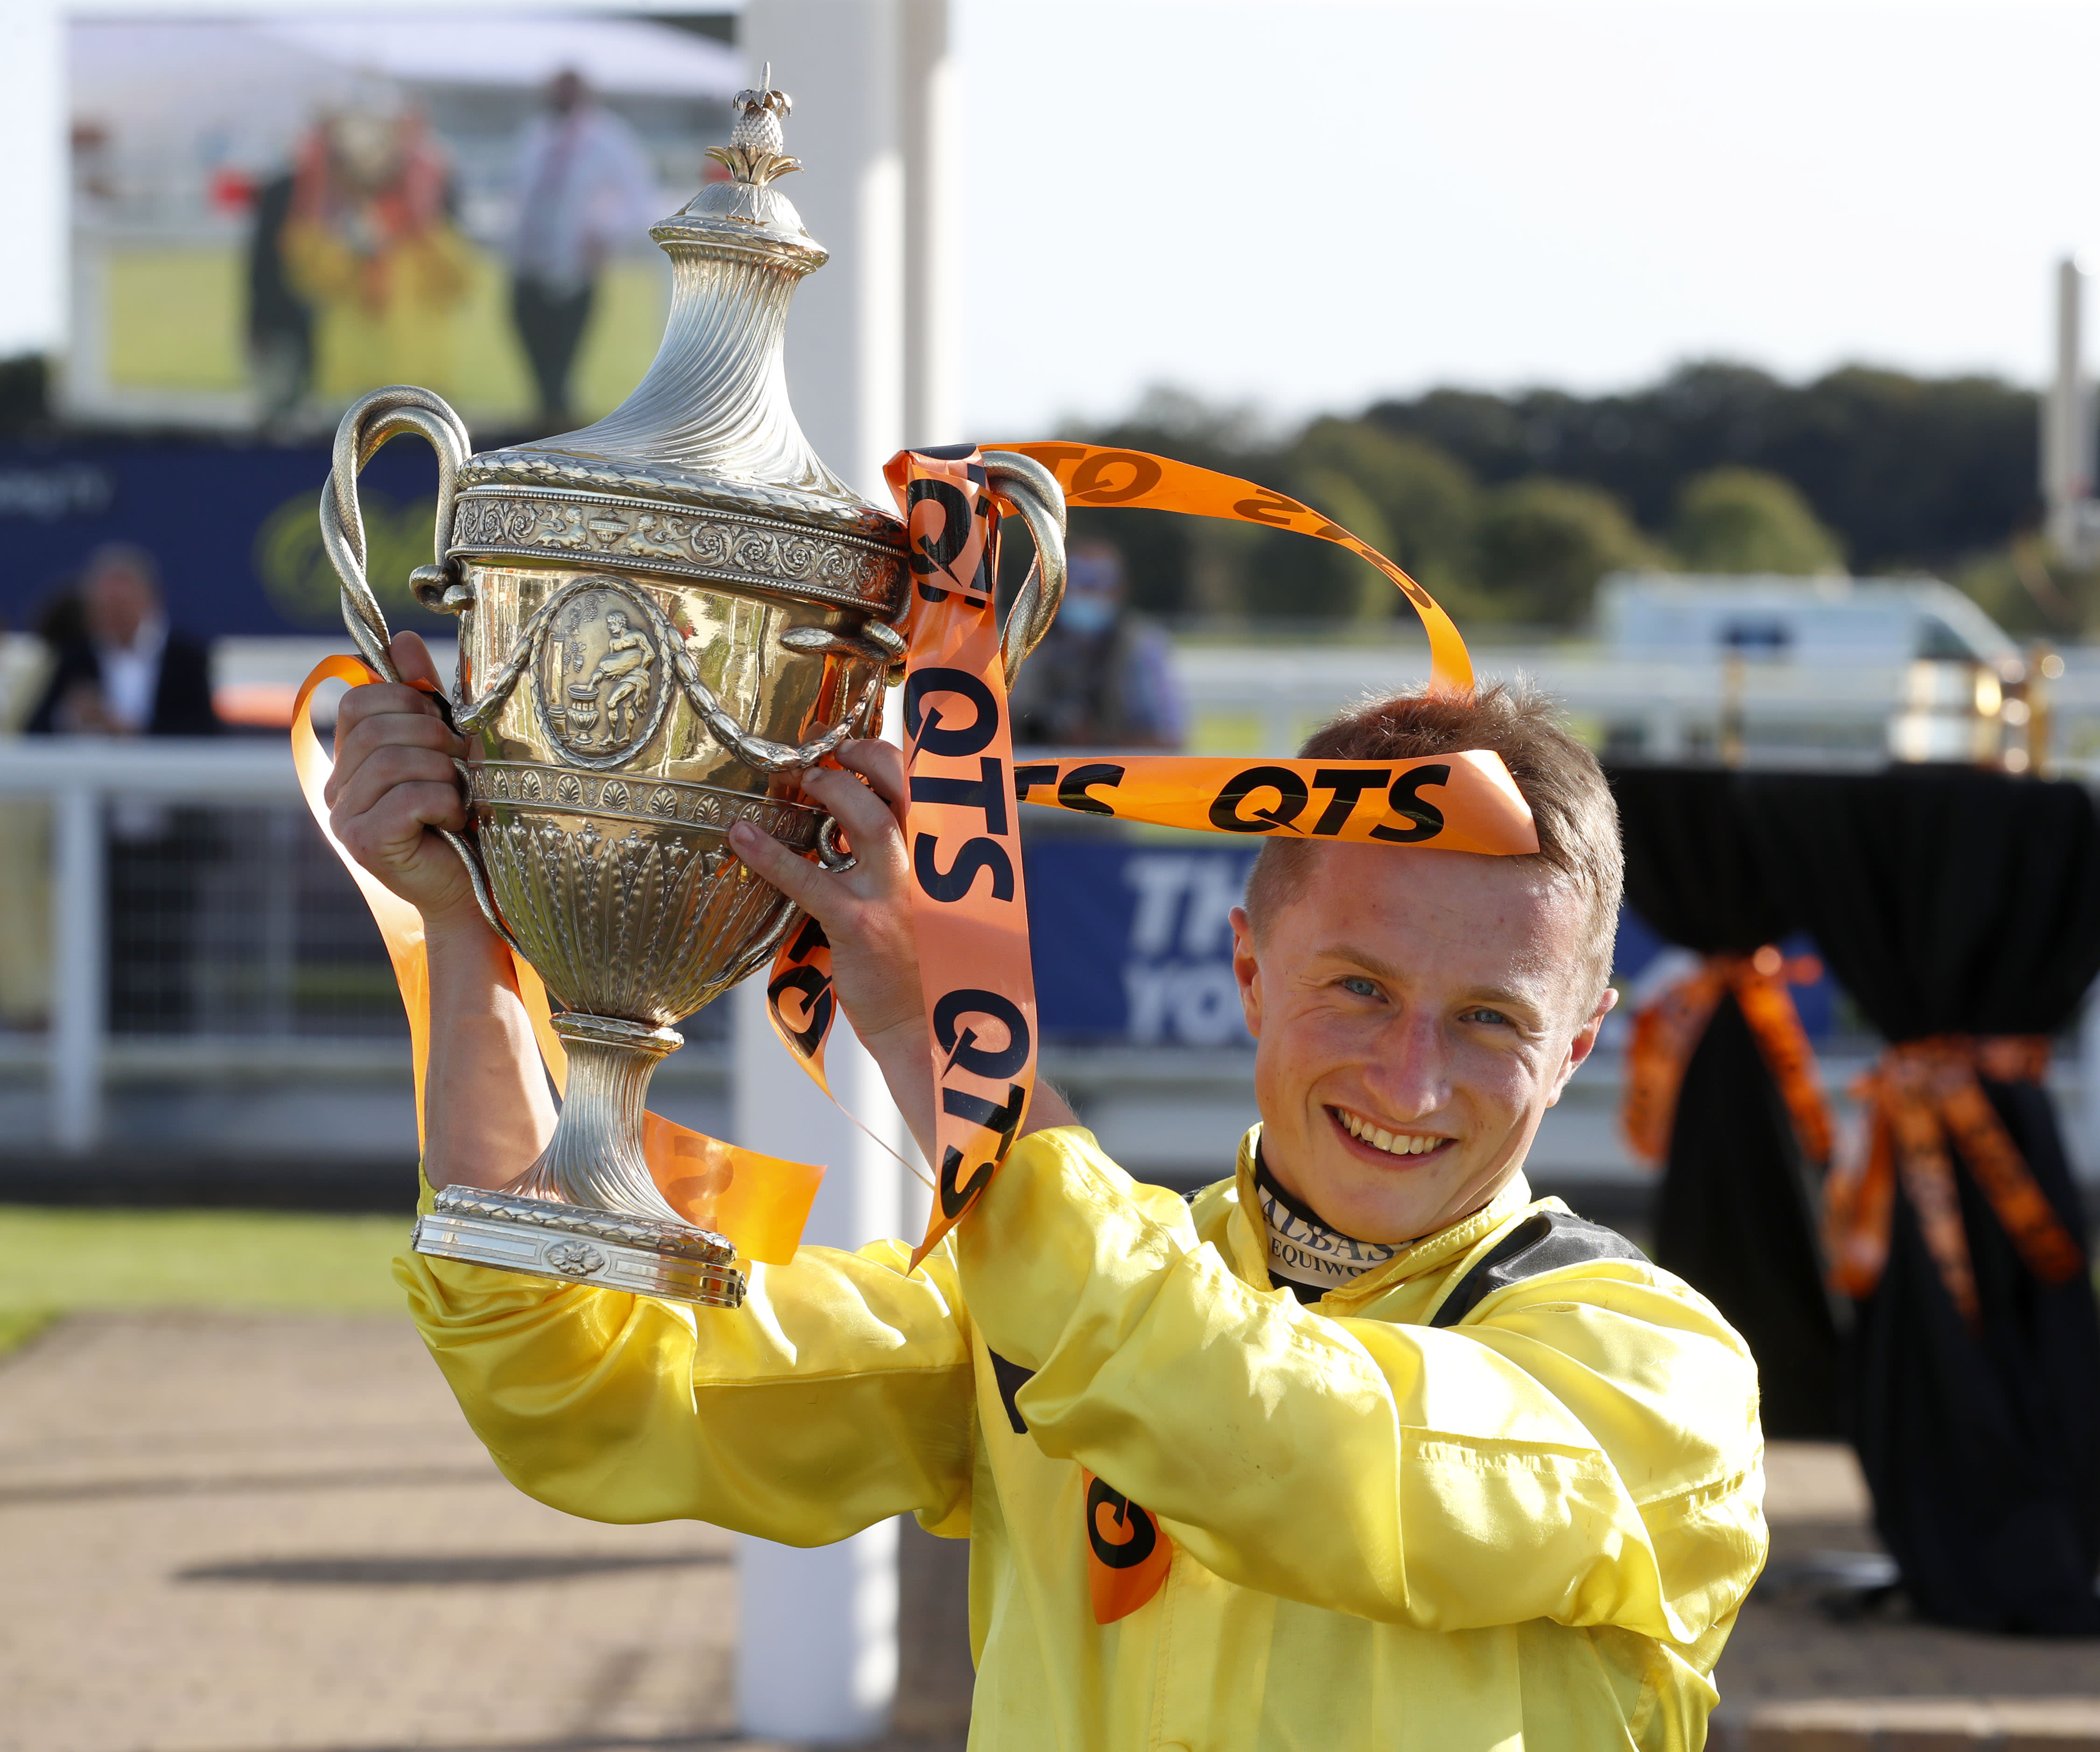 Marquand with the QTS Ayr Gold Cup (Focusonracing)